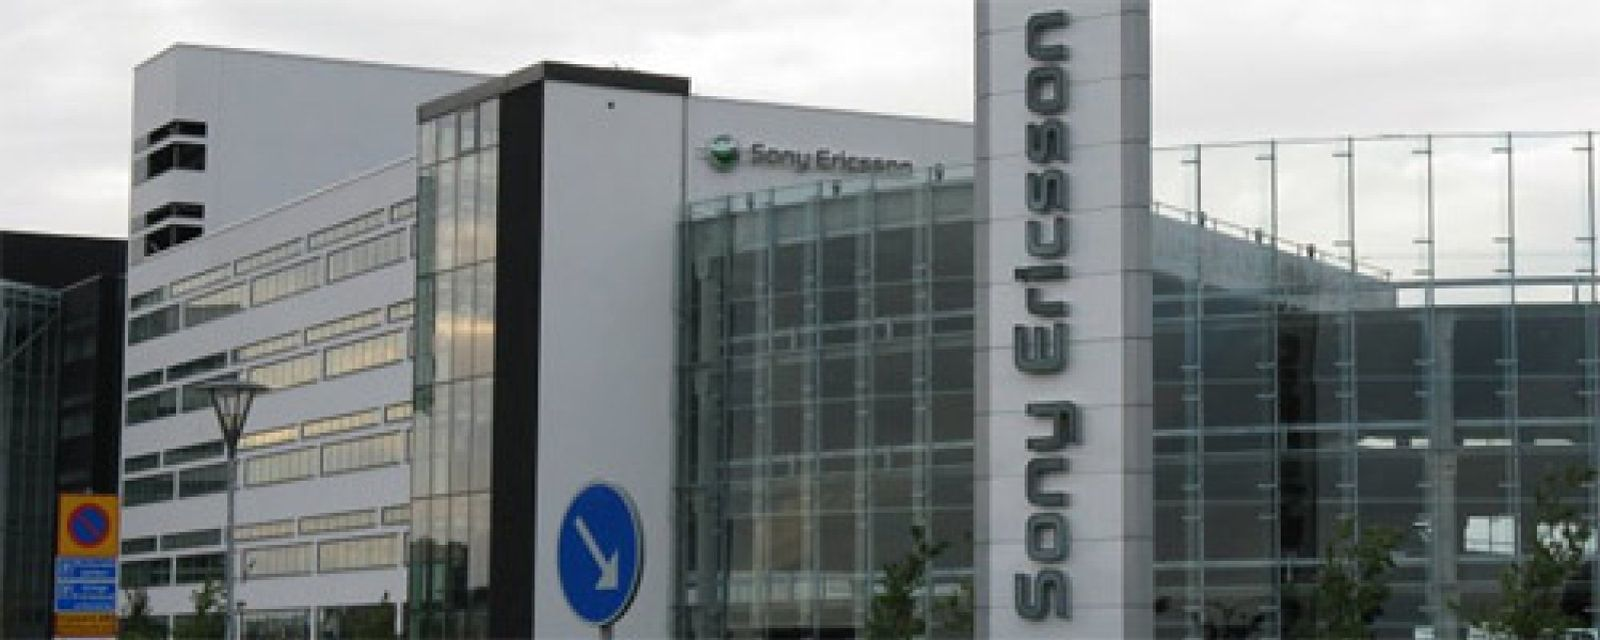 the sony ericsson joint venture Mima program - international business and entrepreneurship sony ericsson was established in 2001 as a 50/50 joint venture between sony and ericsson these two companies joined hands together to introduce a new and innovative range of cellular.